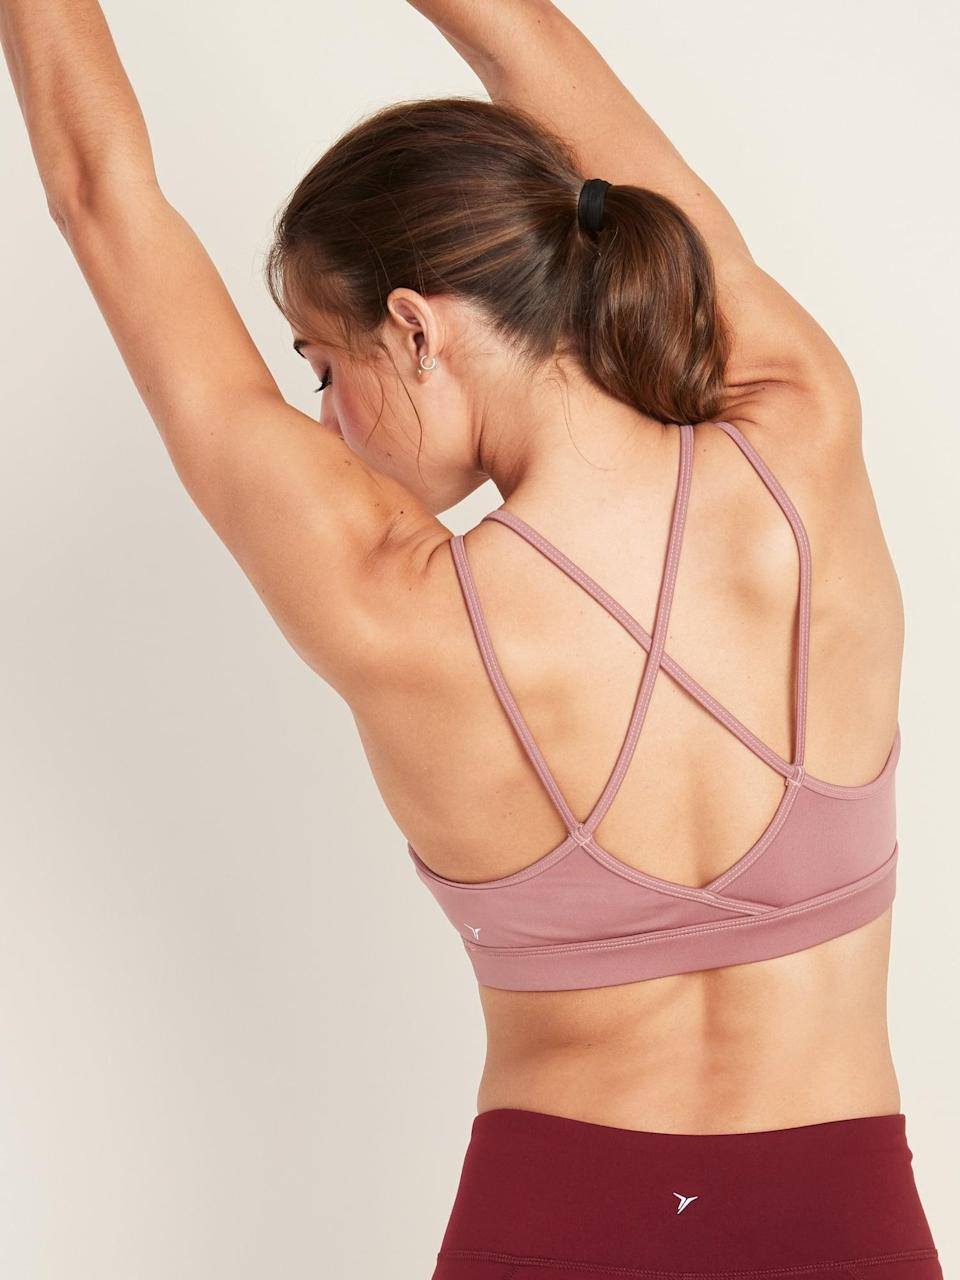 """<p>Because I have a smaller bust and don't need much support, this <a href=""""https://www.popsugar.com/buy/Old-Navy-Light-Support-Strappy-Sports-Bra-547986?p_name=Old%20Navy%20Light%20Support%20Strappy%20Sports%20Bra&retailer=oldnavy.gap.com&pid=547986&price=17&evar1=fit%3Aus&evar9=47449829&evar98=https%3A%2F%2Fwww.popsugar.com%2Fphoto-gallery%2F47449829%2Fimage%2F47449830%2FOld-Navy-Light-Support-Strappy-Sports-Bra&list1=old%20navy%2Cfitness%20gear&prop13=api&pdata=1"""" class=""""link rapid-noclick-resp"""" rel=""""nofollow noopener"""" target=""""_blank"""" data-ylk=""""slk:Old Navy Light Support Strappy Sports Bra"""">Old Navy Light Support Strappy Sports Bra</a> ($17, originally $20) is my favorite. Its lightweight and comfortable design is exactly what I need for low-intensity workouts like yoga. Plus, it comes in several colors, and I love the cute back design.</p>"""